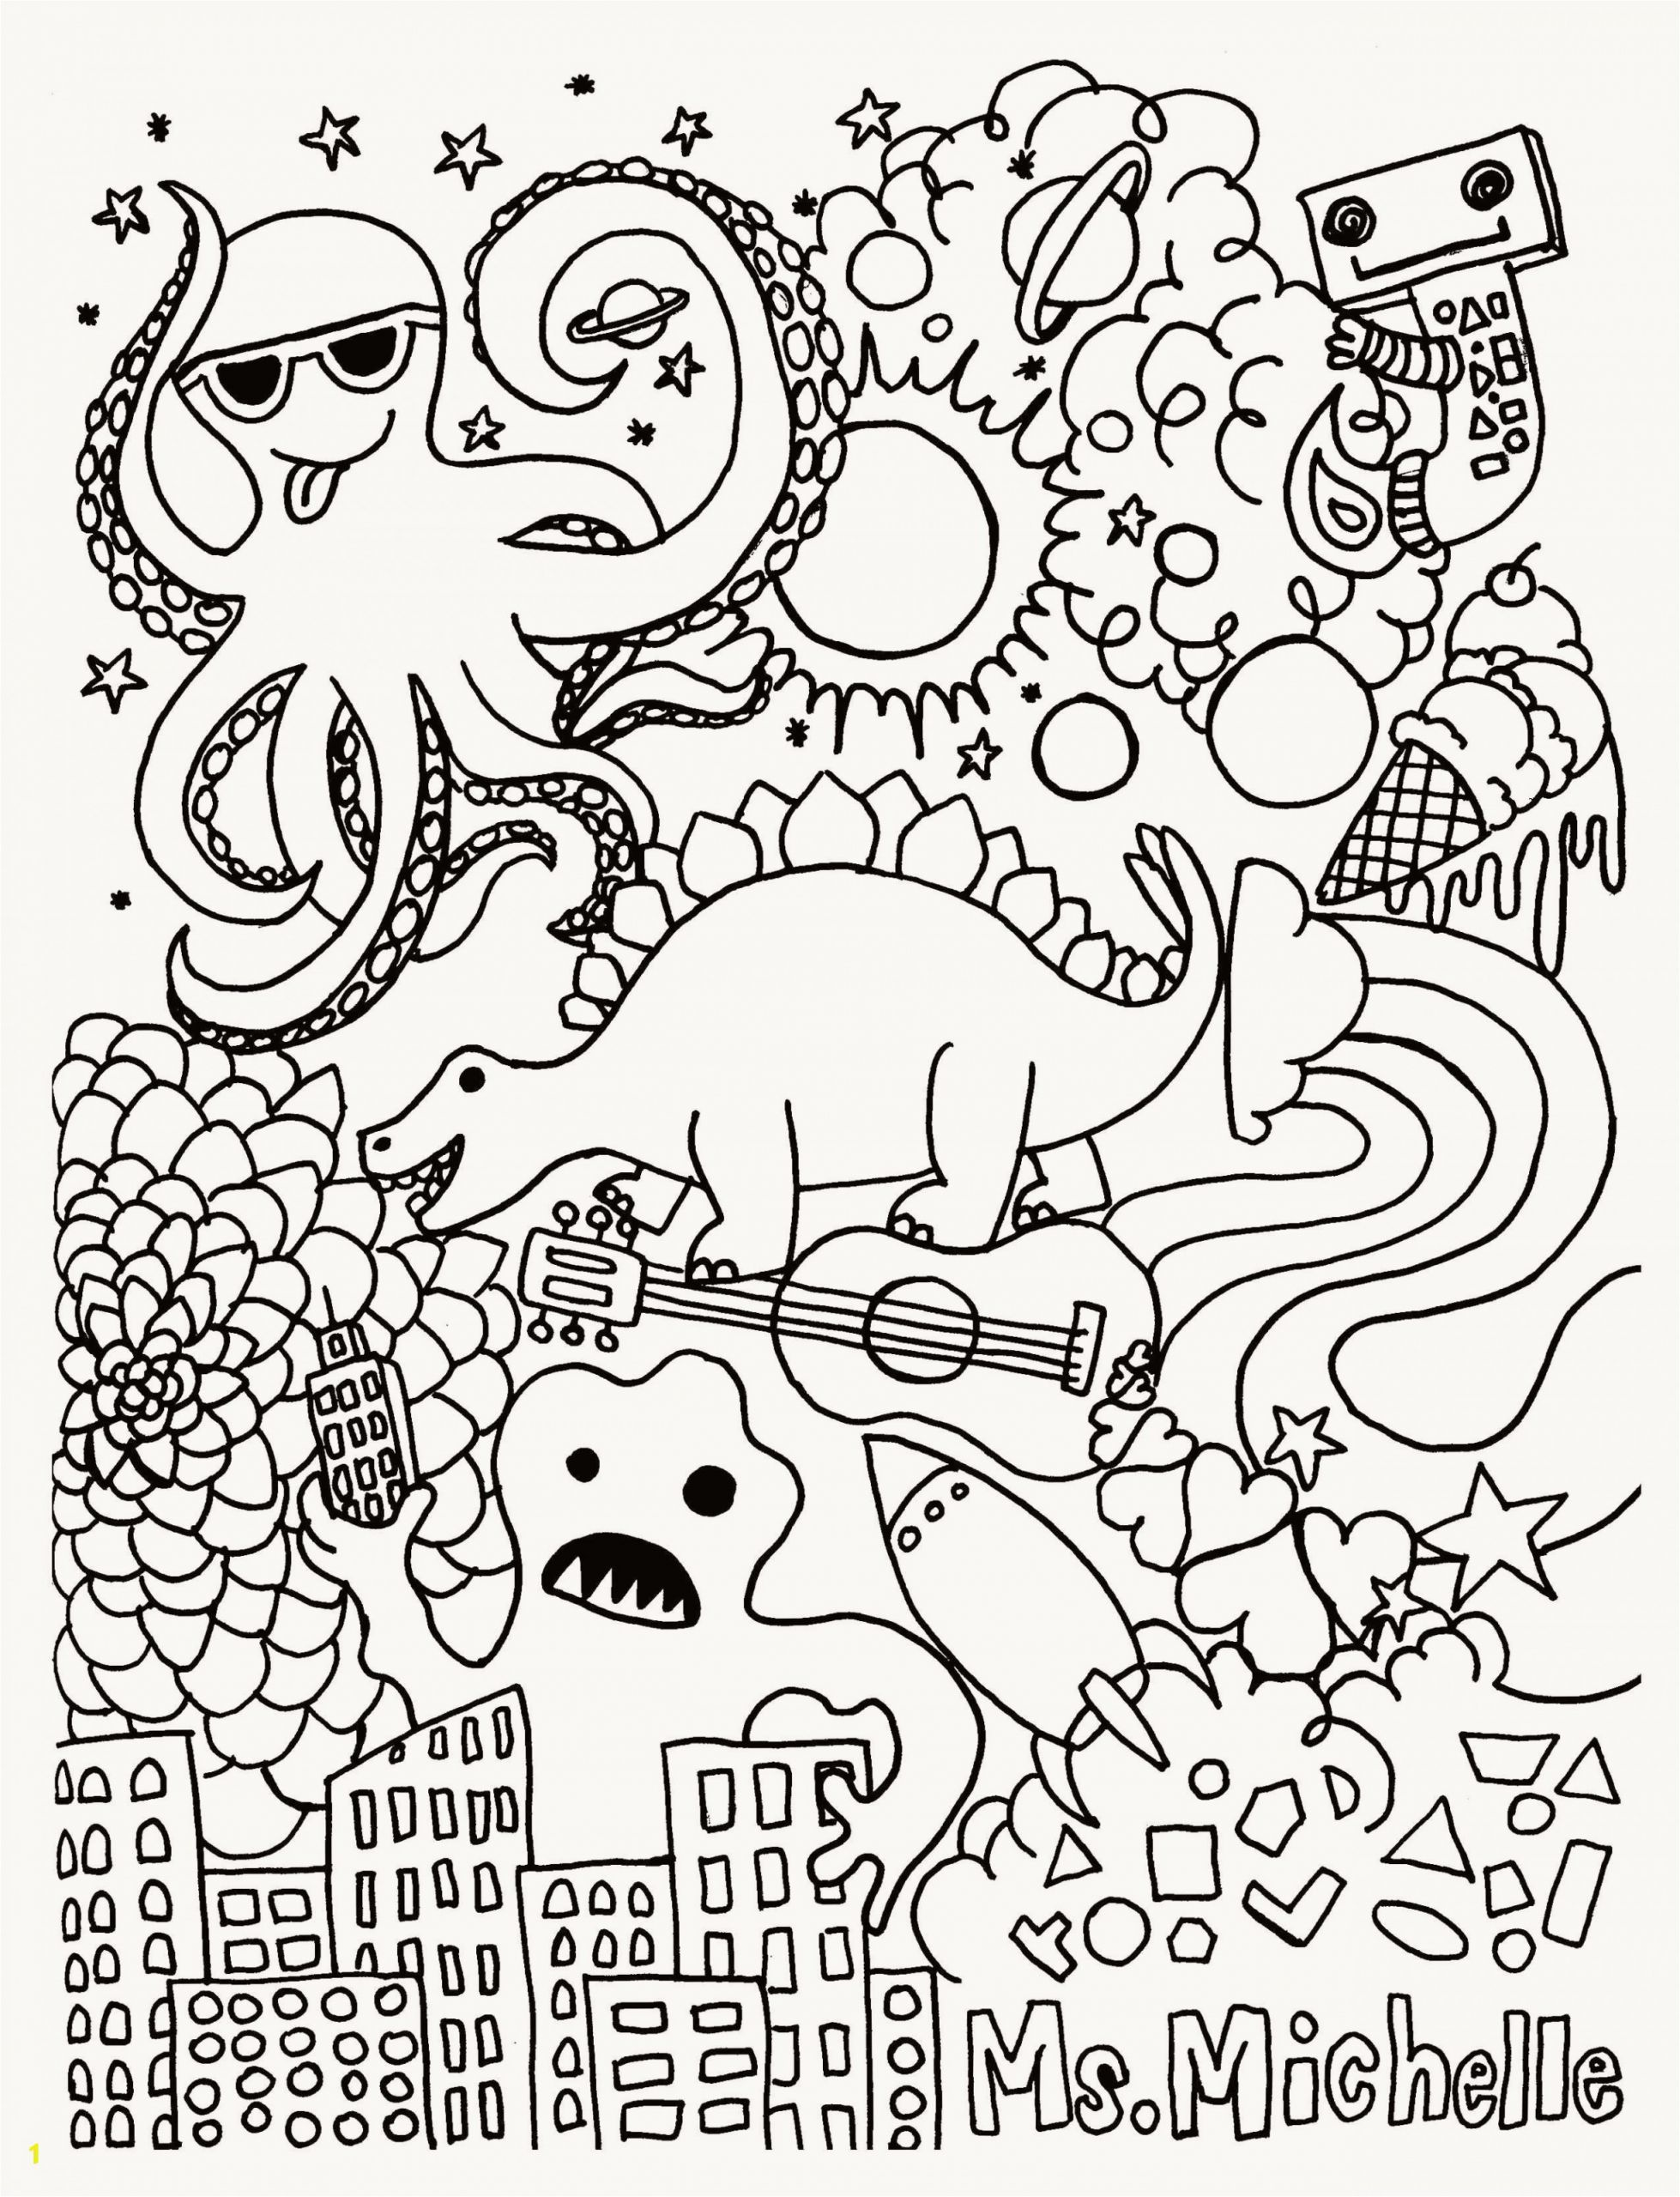 Fortnite Thanos Coloring Pages Marvel and Dc Coloring Pages Dc Burlingtonjs org